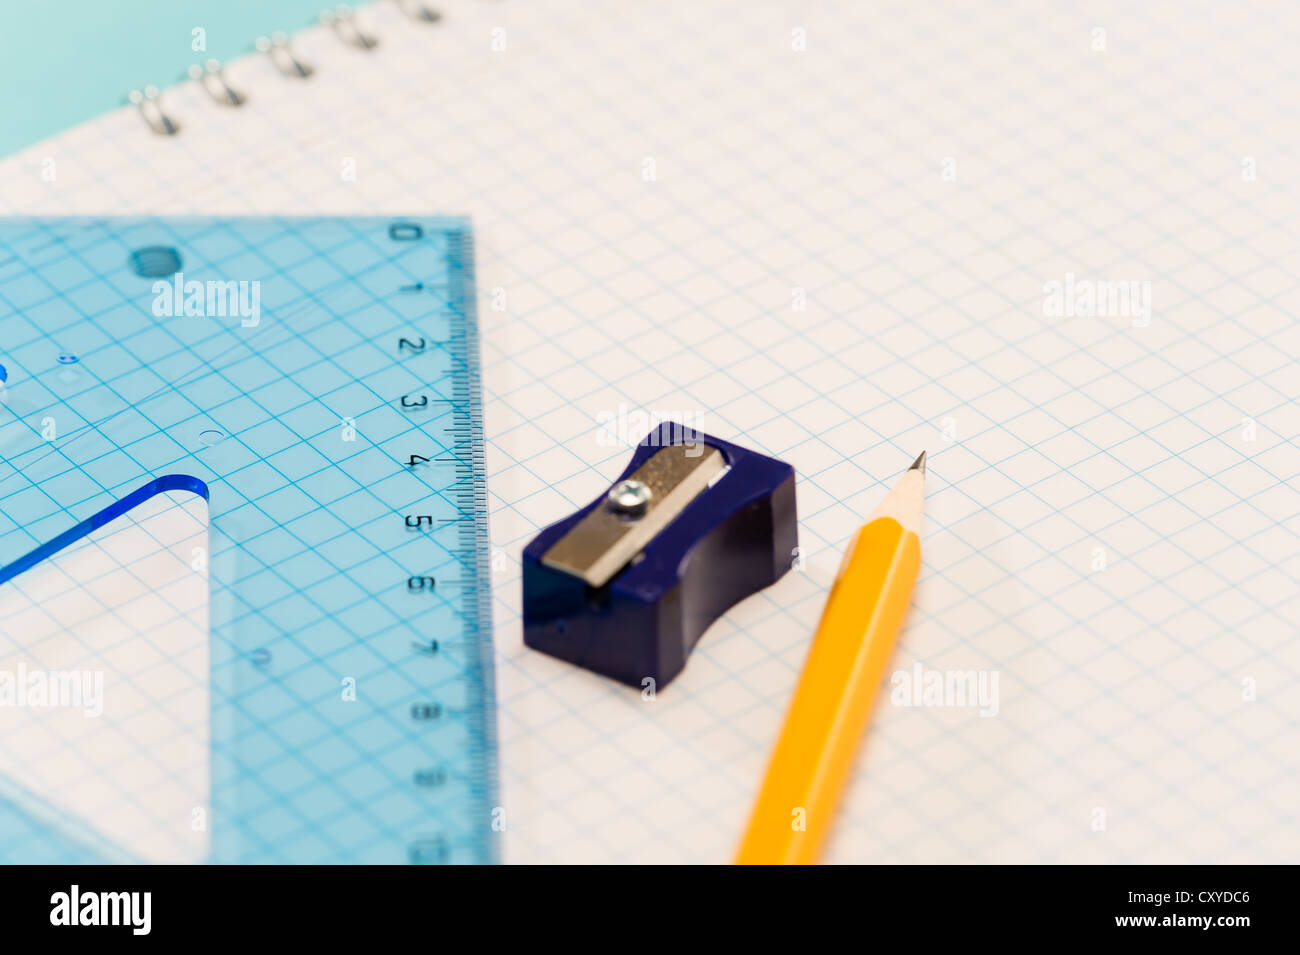 Sharpener with ruler, pencil on notepad school supplies - Stock Image